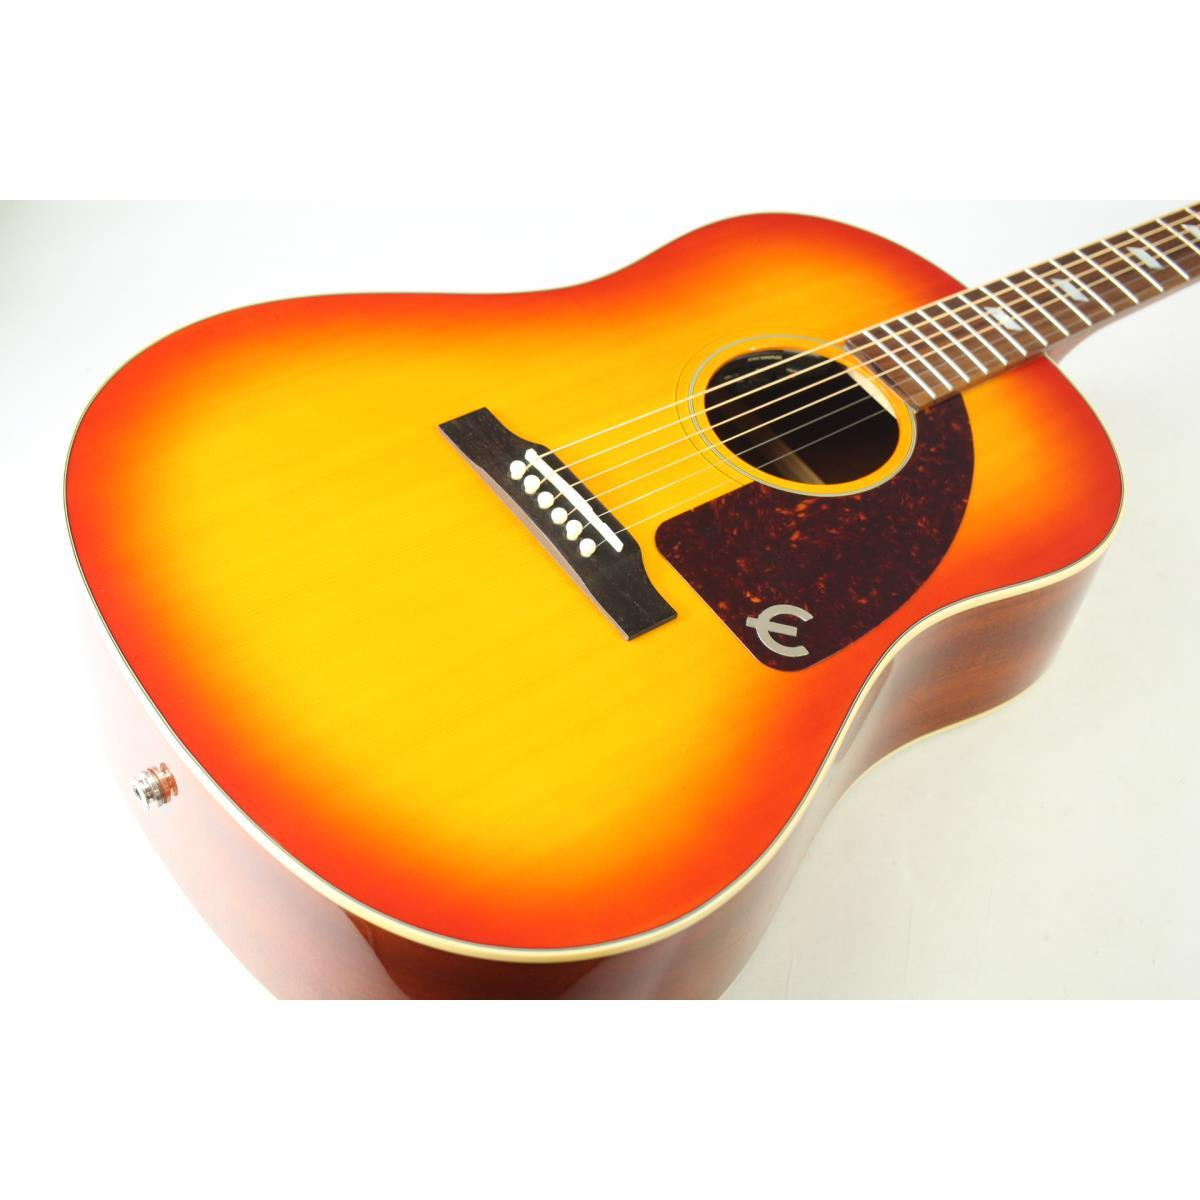 EPIPHONE INSPIRED BY 1964 TEXAN【中古】